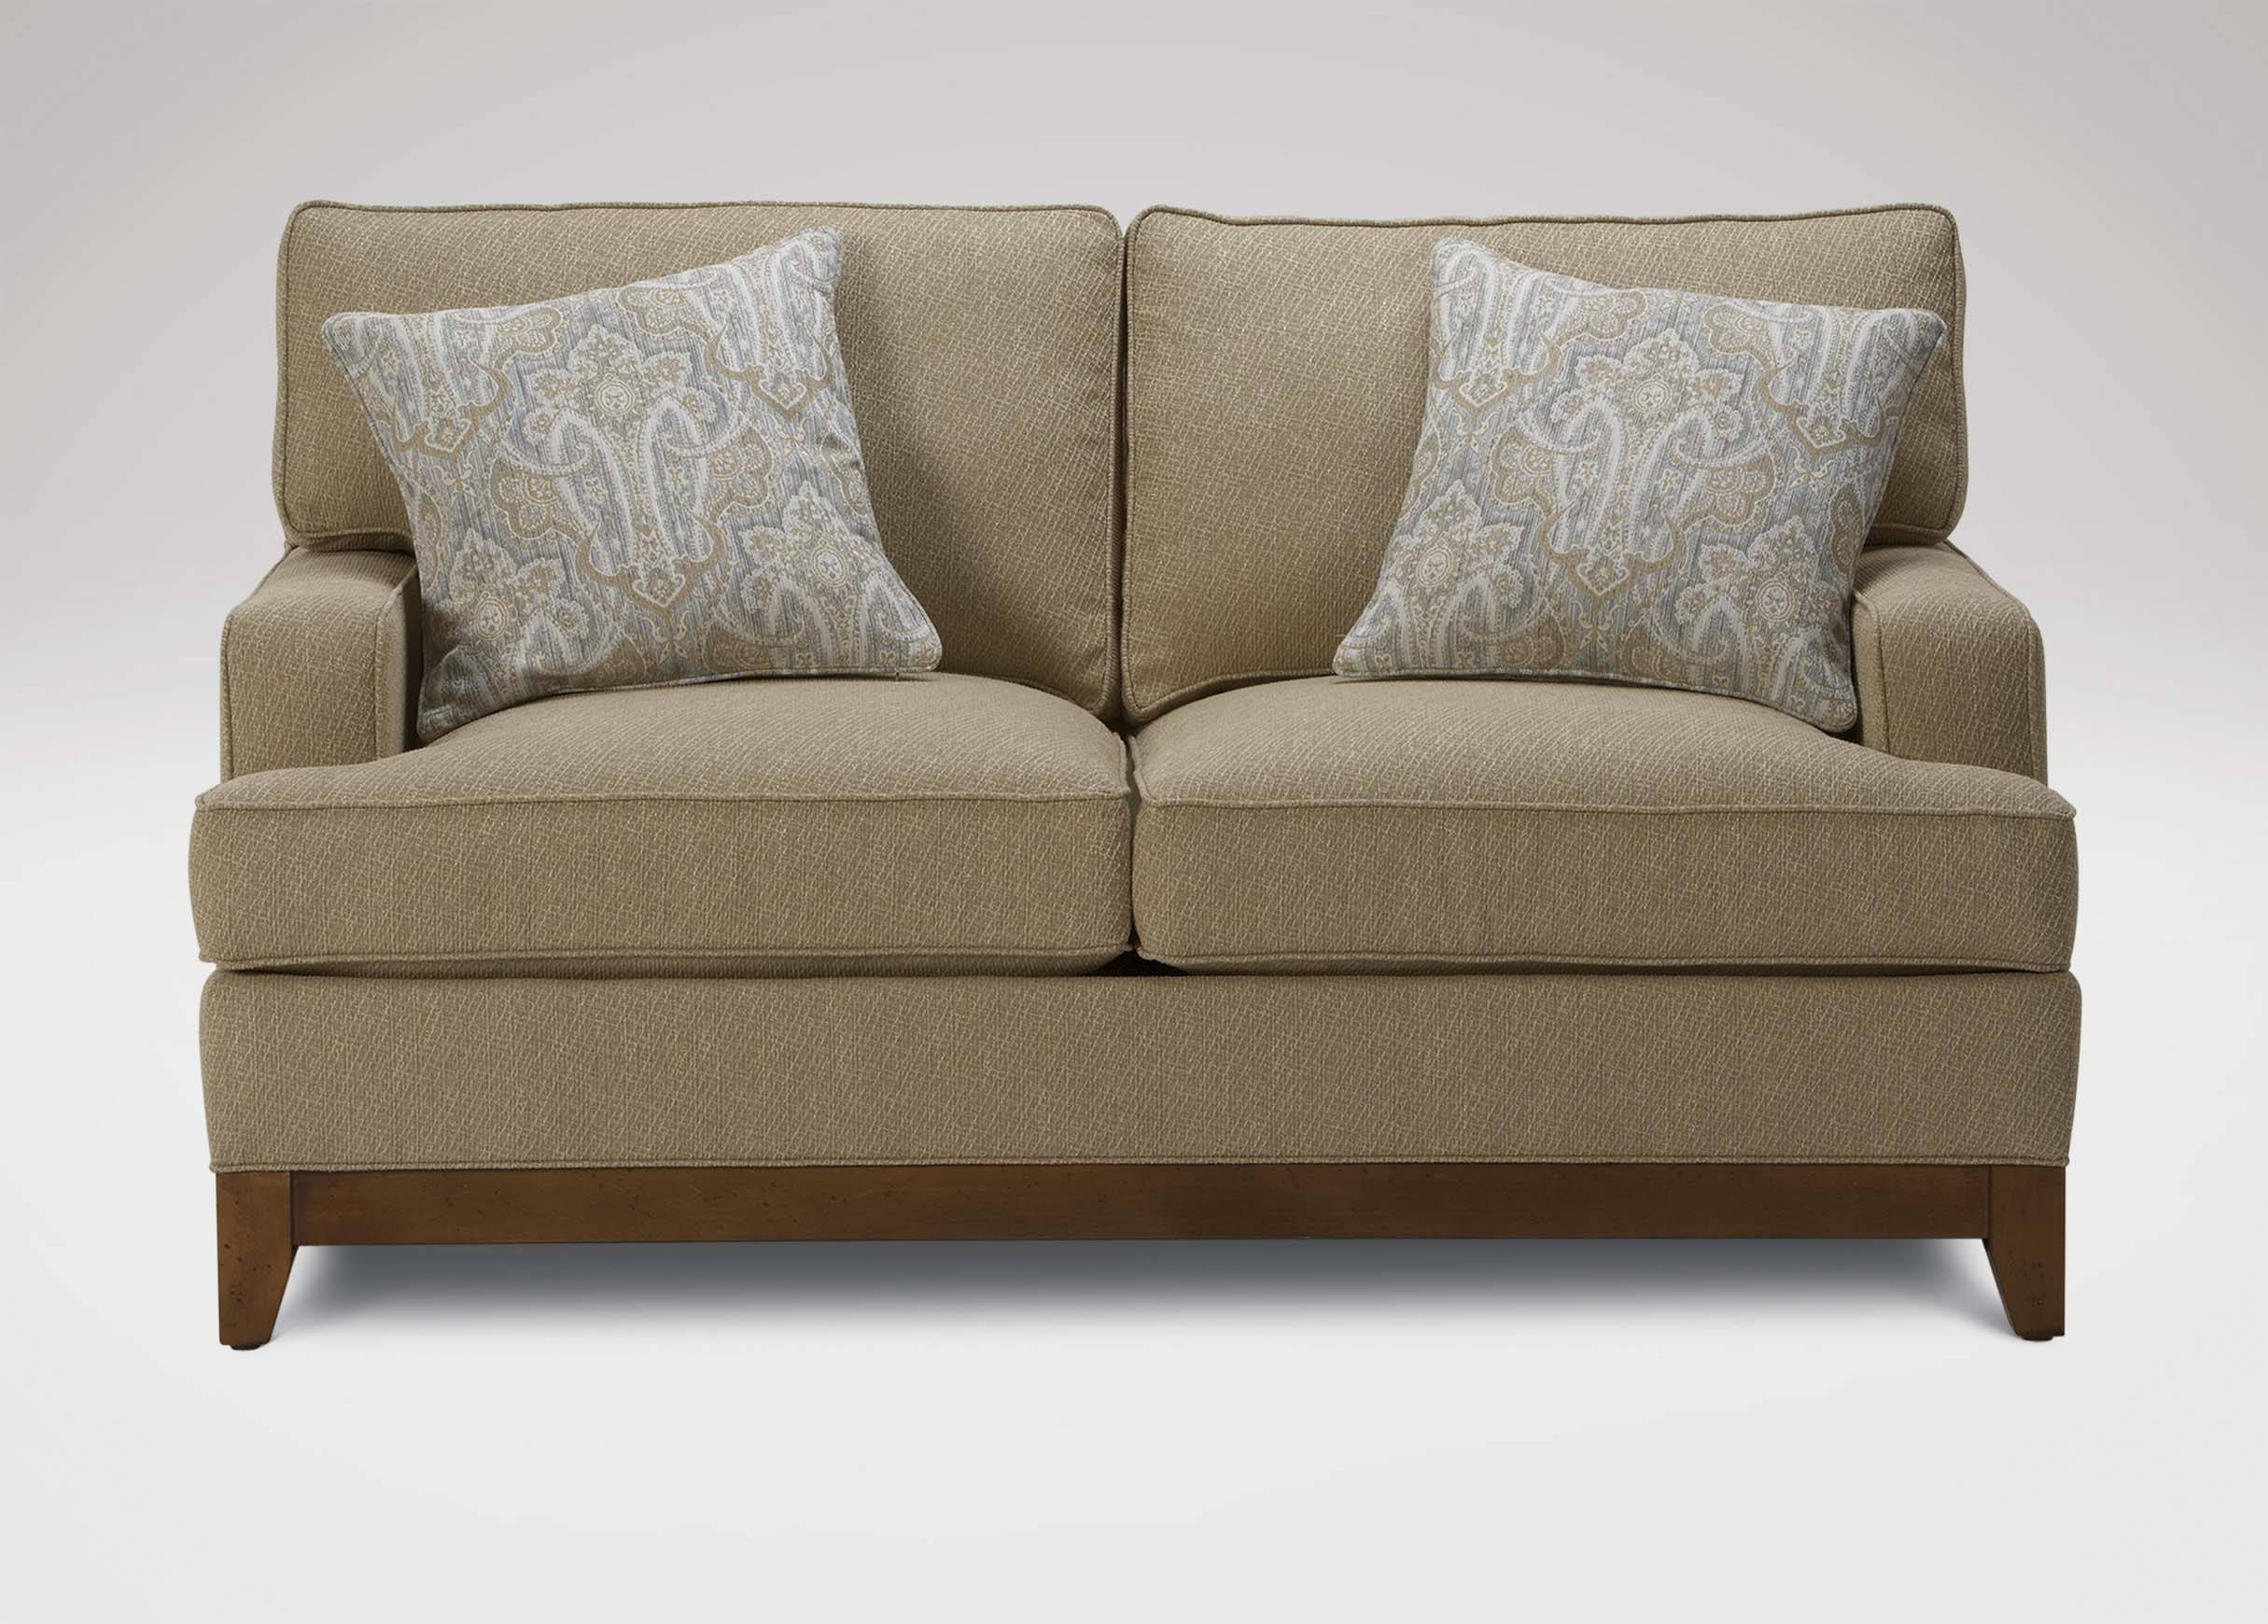 Furniture: Using Pretty Cheap Sectional Sofas Under 300 For with regard to Big Sofas Sectionals (Image 15 of 30)